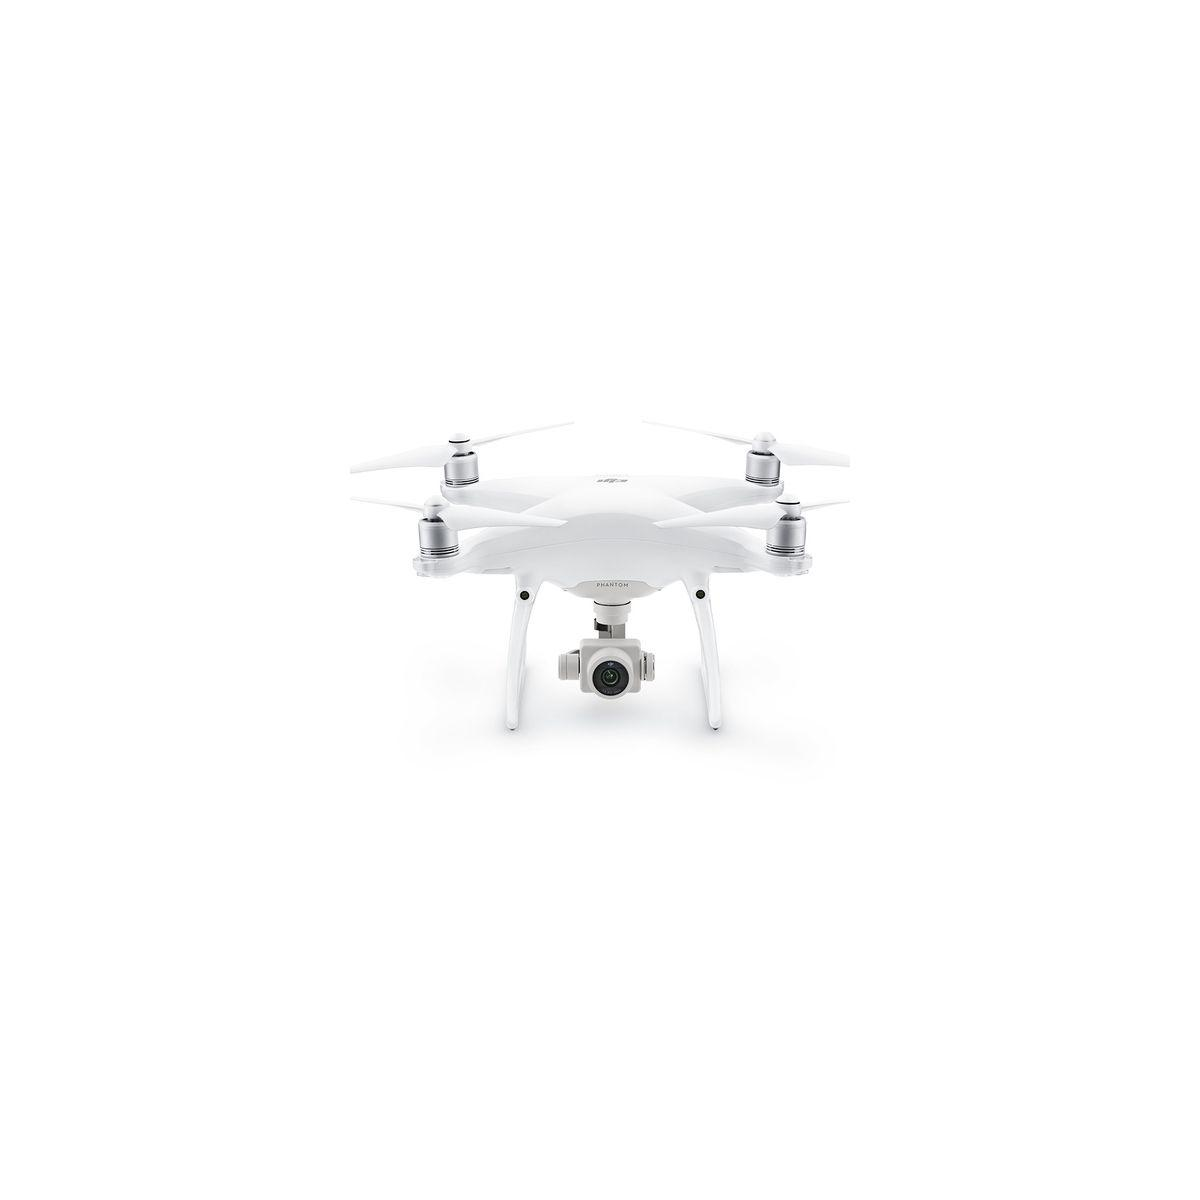 Drones dji phantom 4 advanced + - 7% de remise immédiate avec le code : anniv7 (photo)